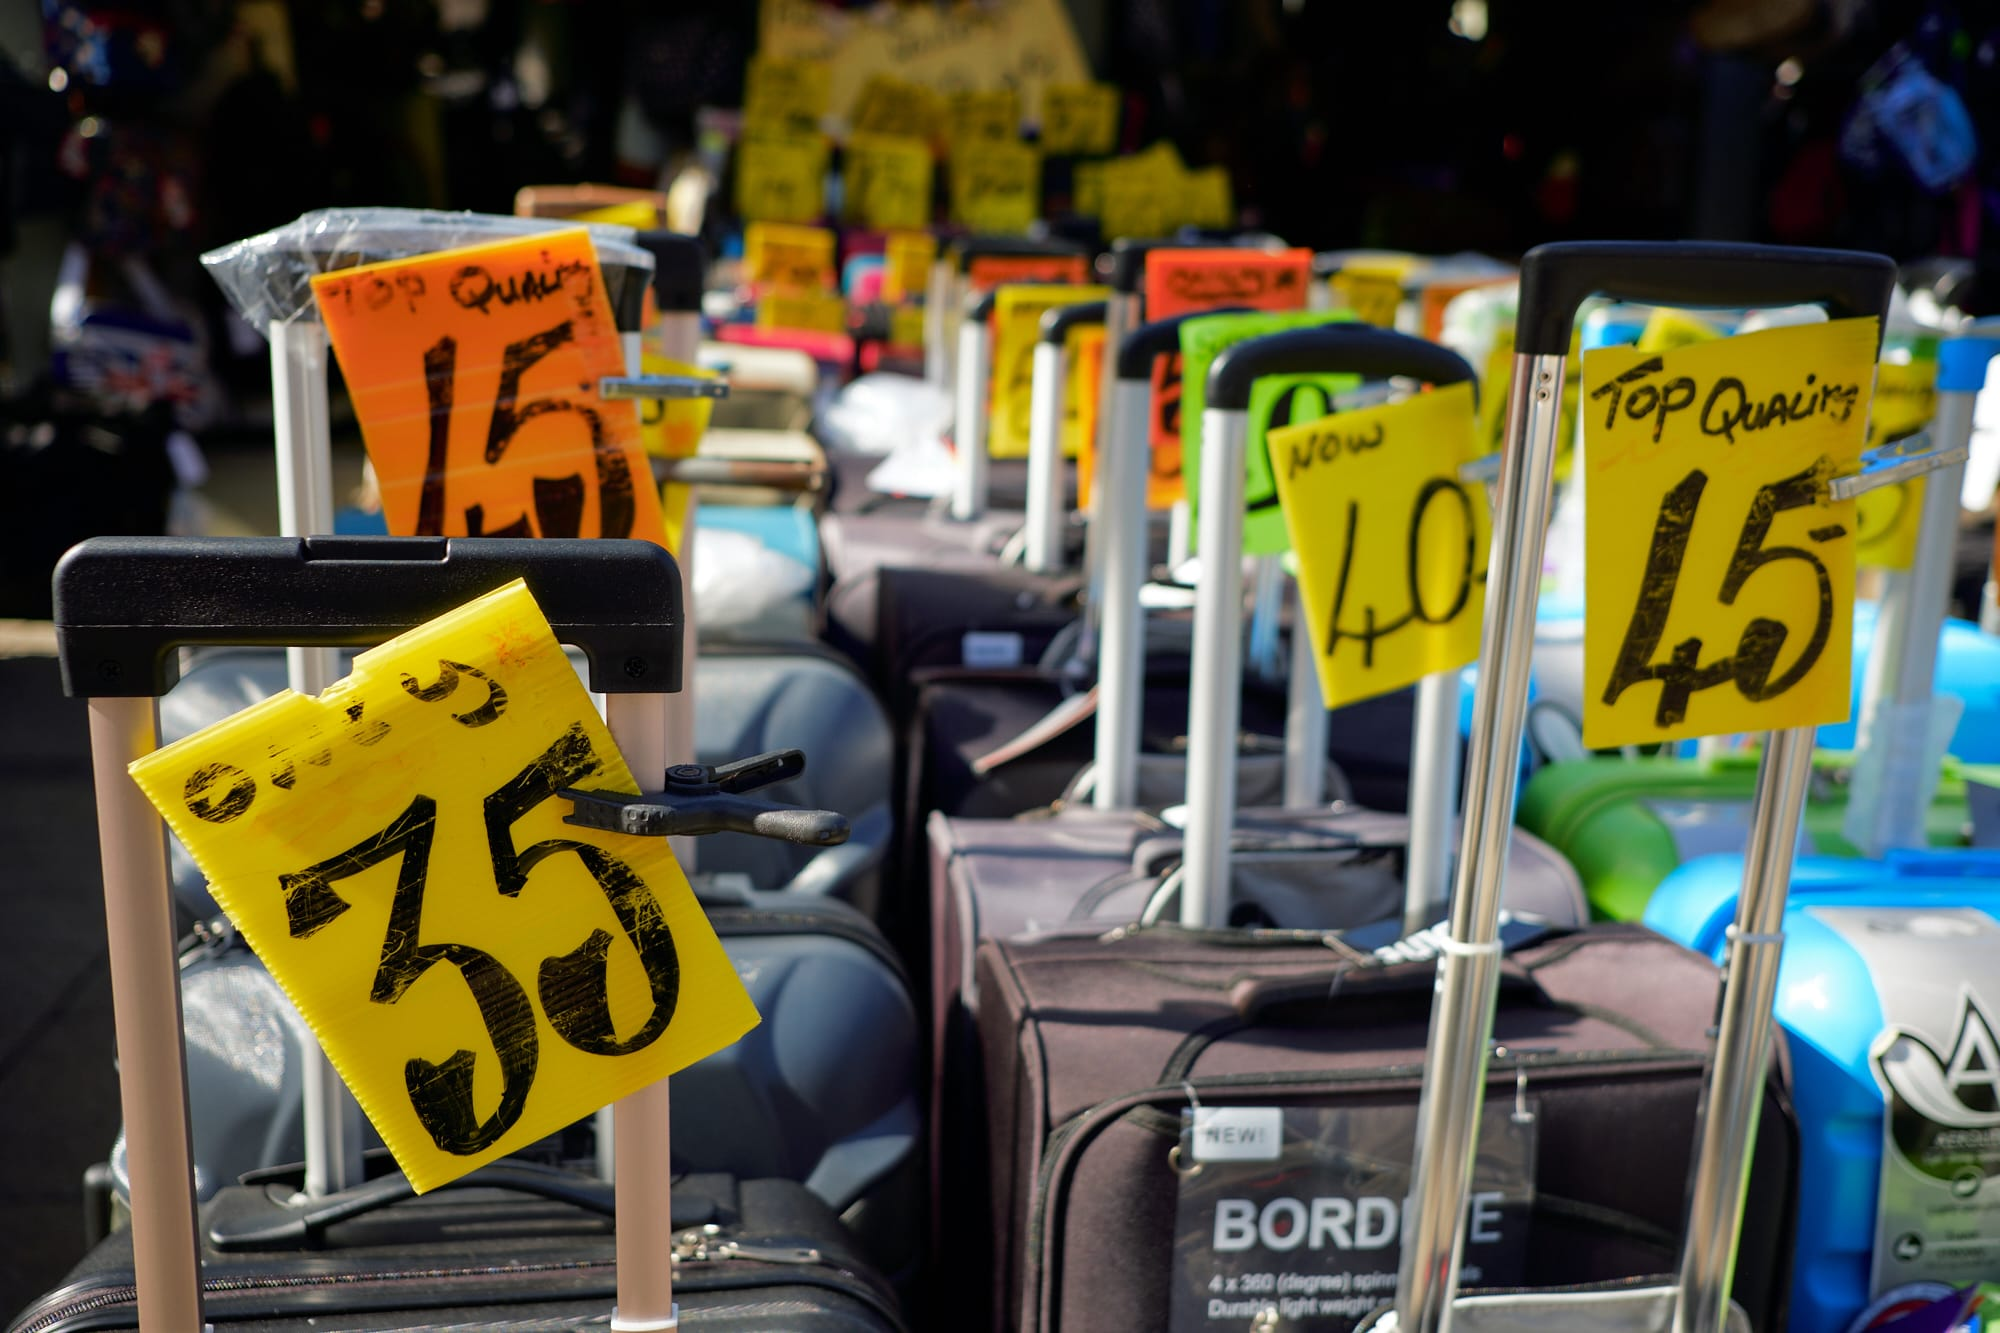 luggage price signs at market